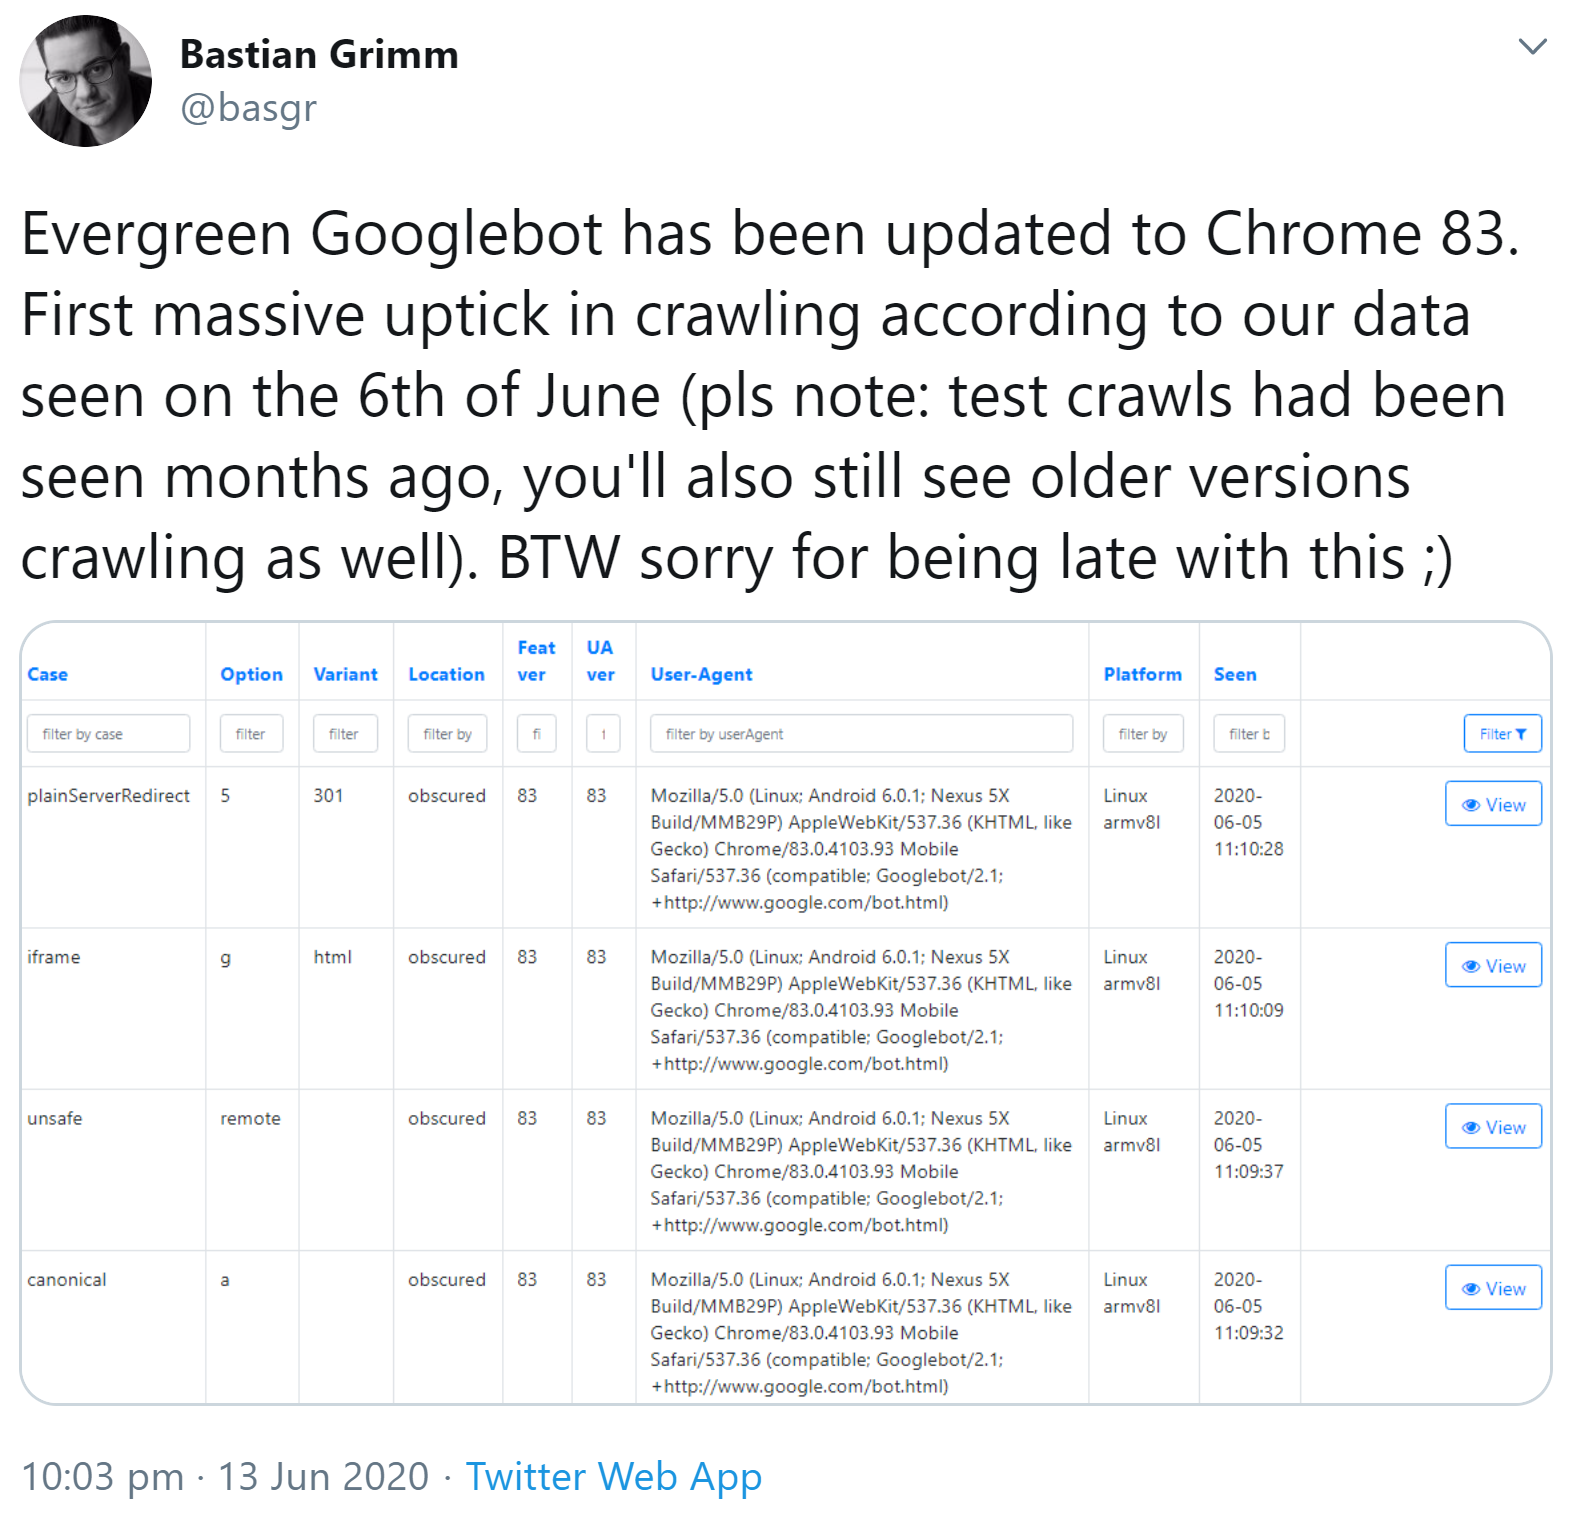 Update from Googlebot to Chrome 83